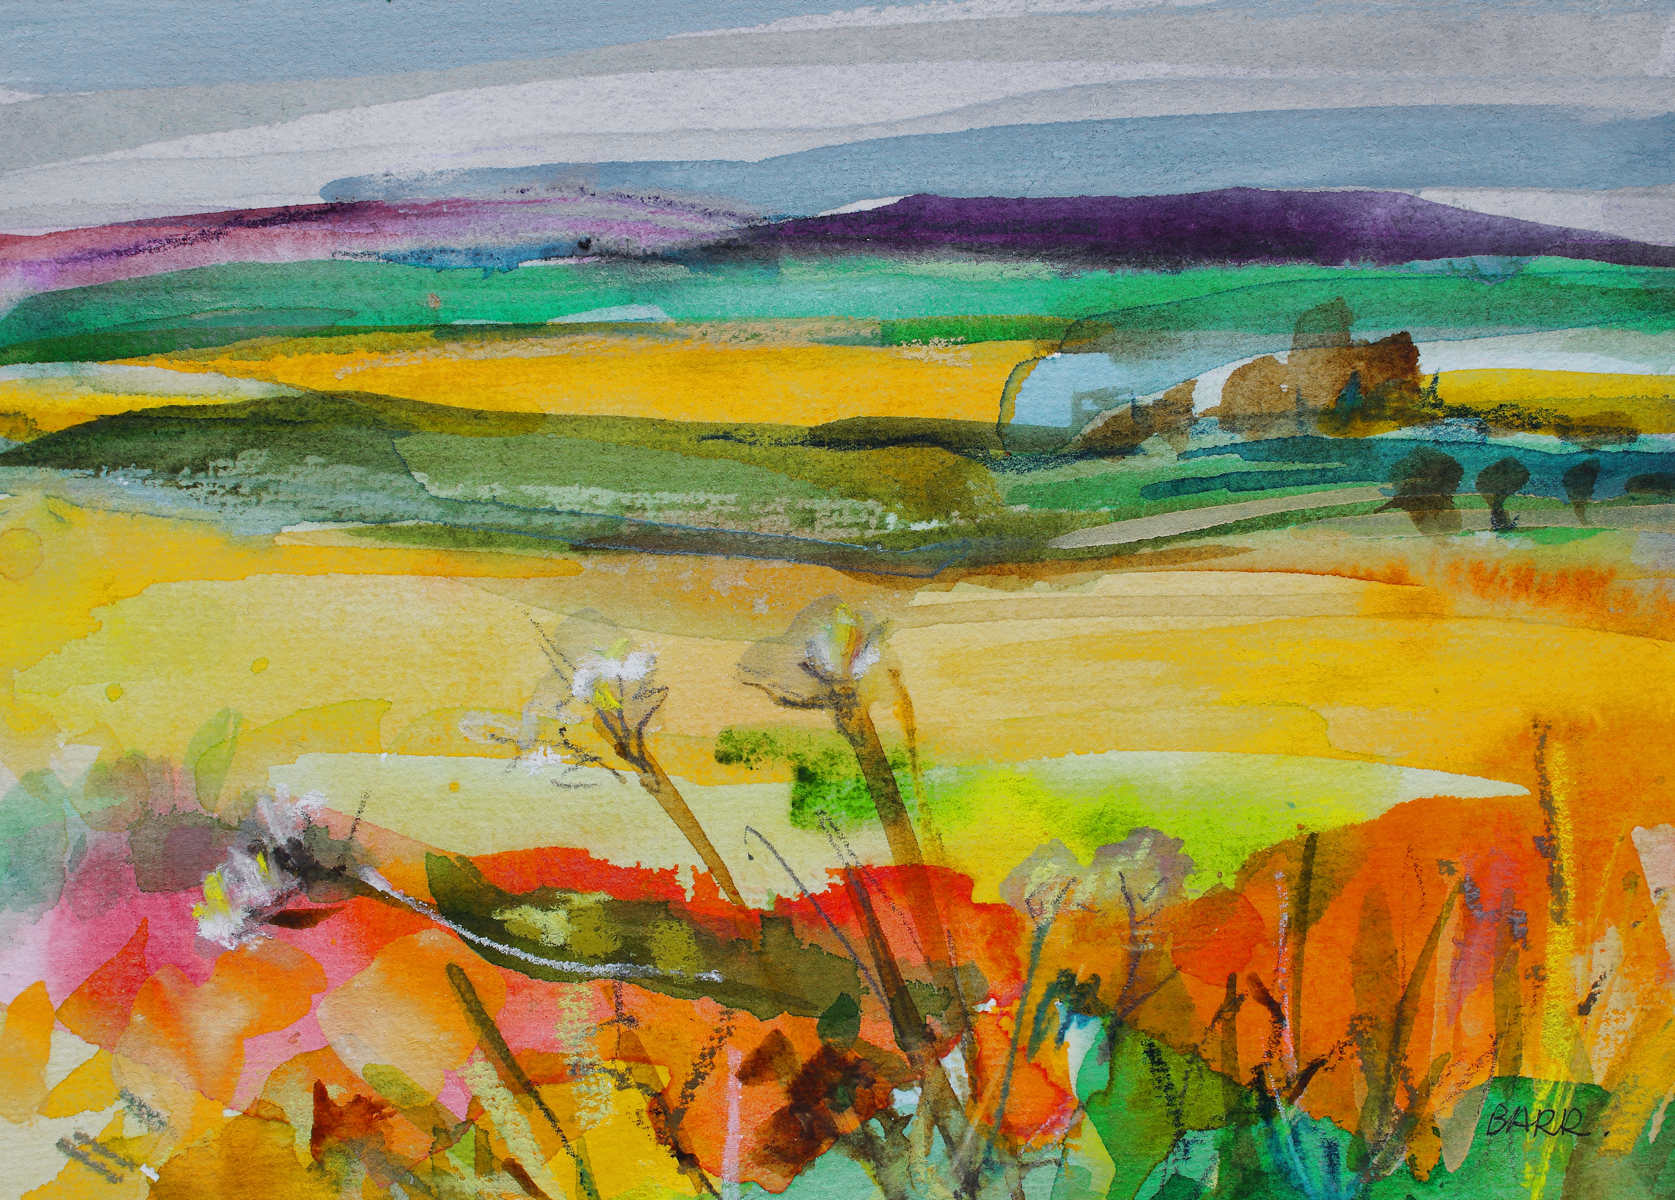 Watercolour landscape Auchnagatt by Shona Barr